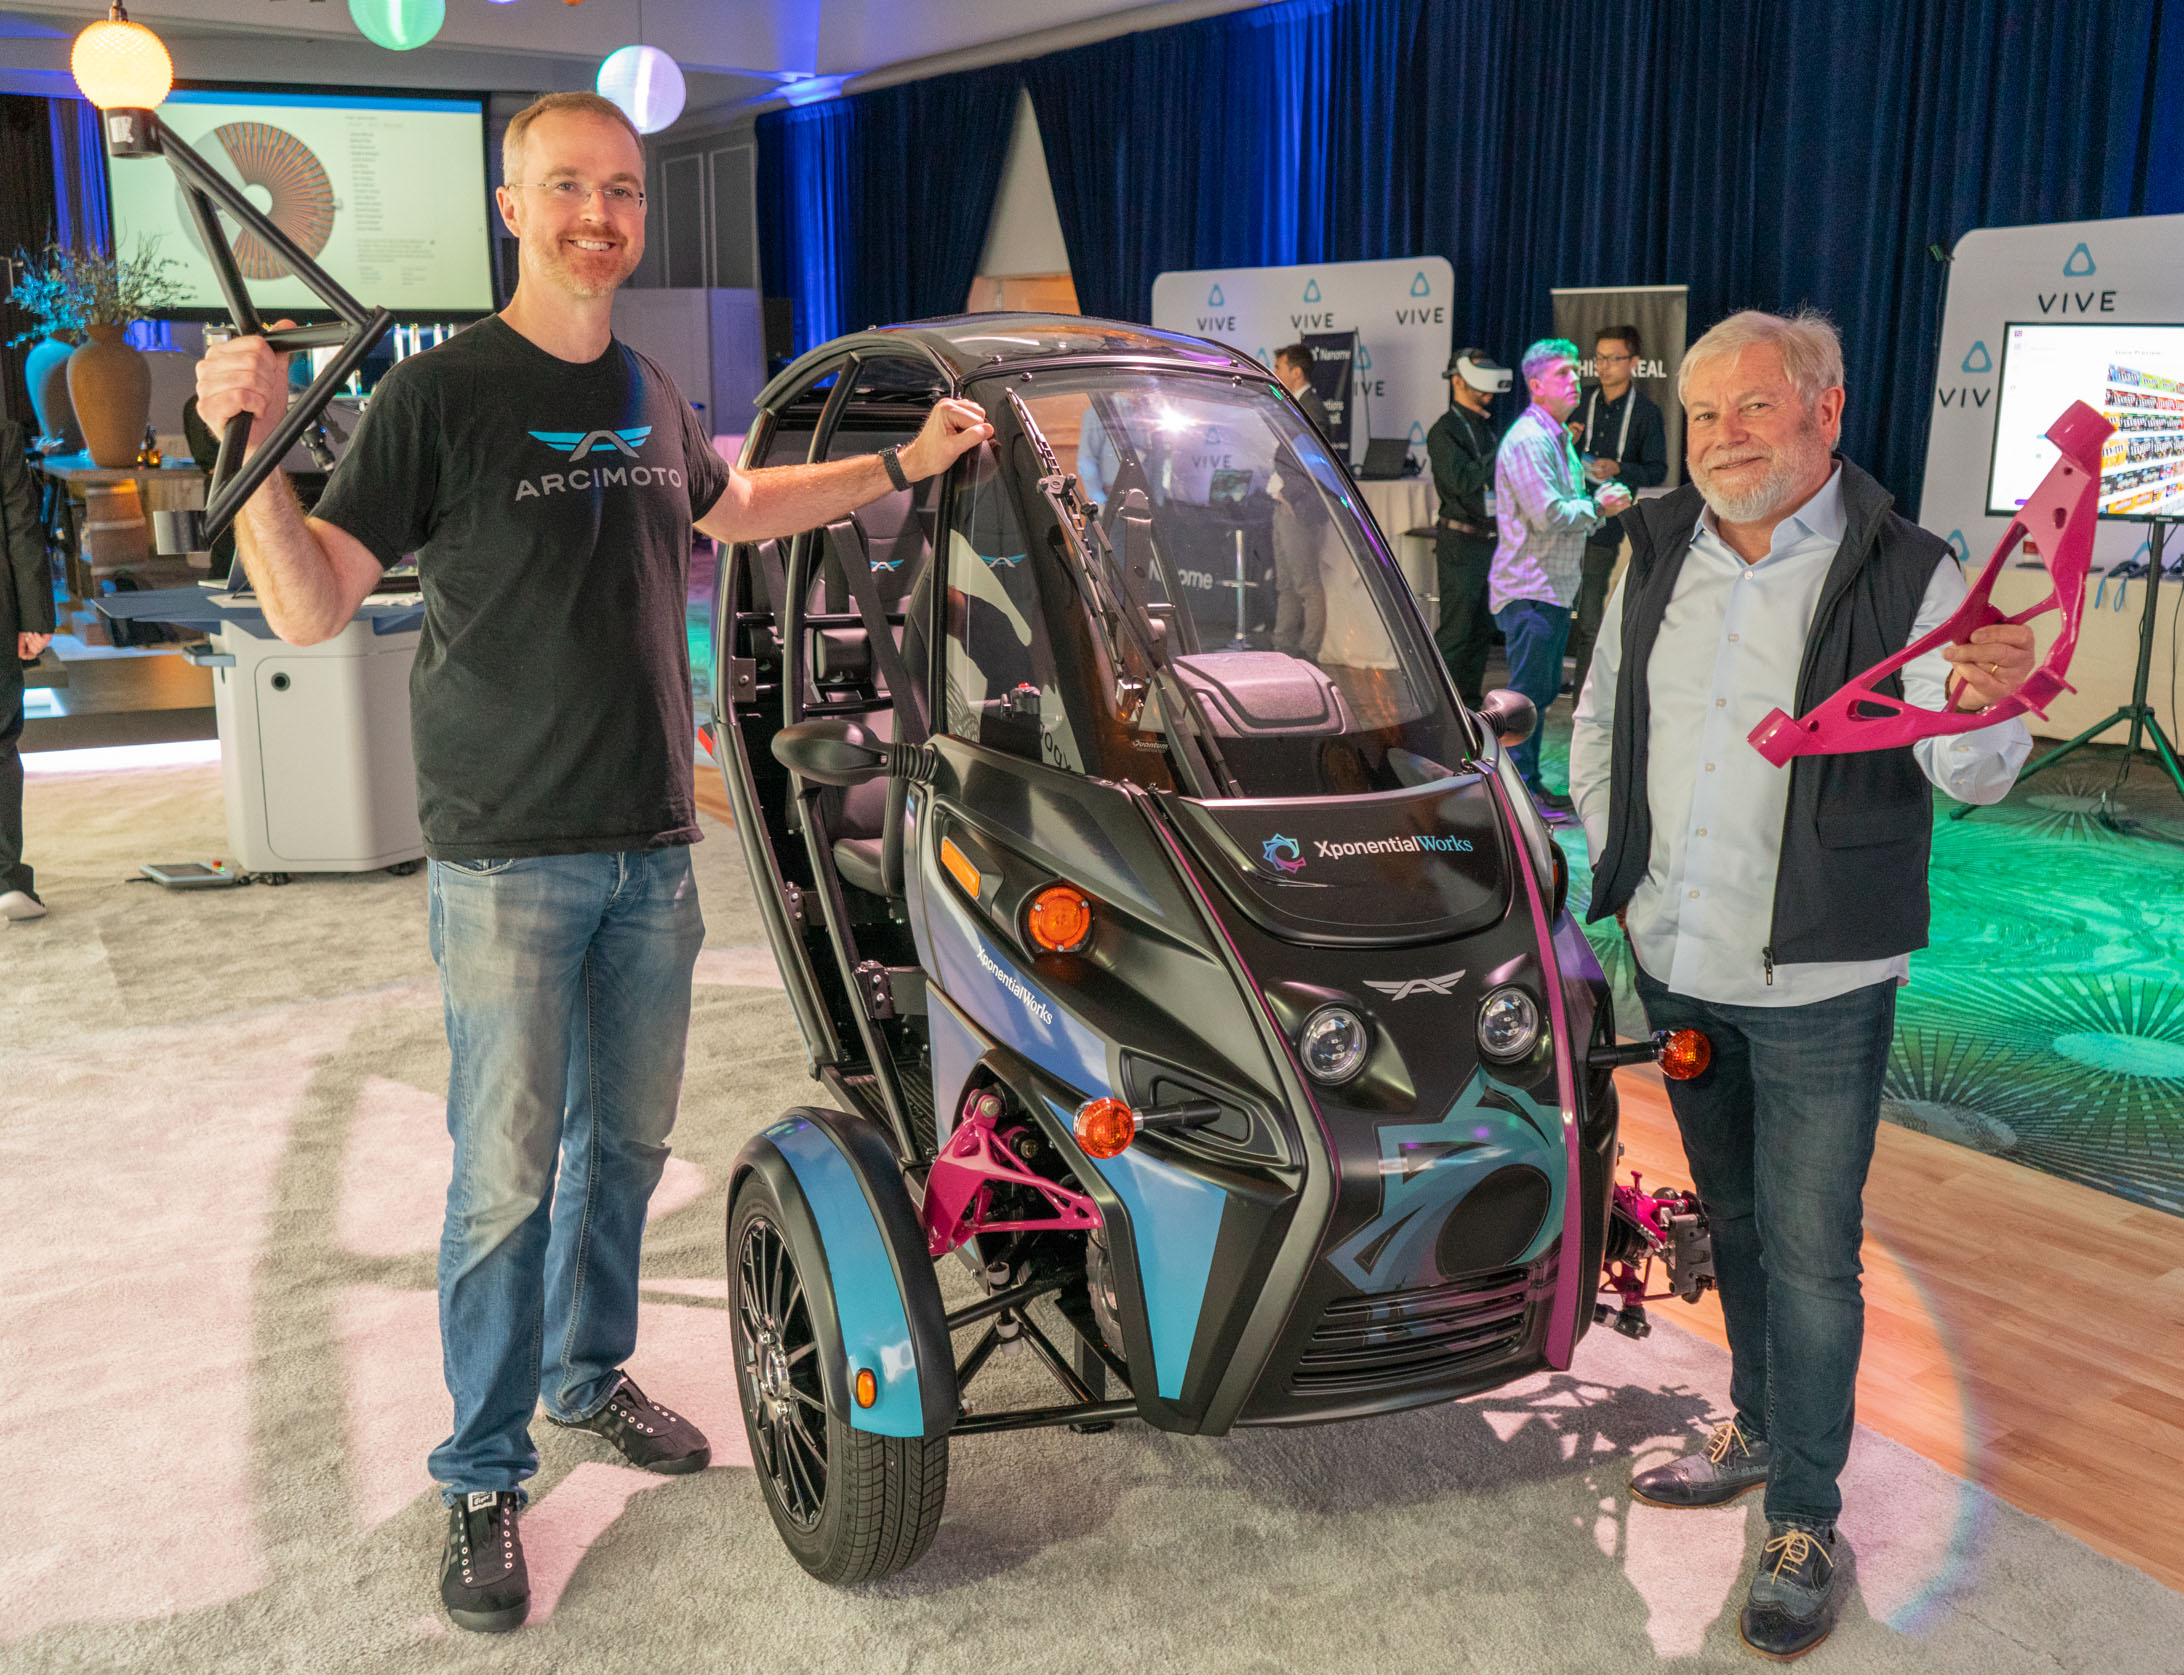 Arcimoto Battery Day Update: The Most Fun You Can Have With Your Pants On